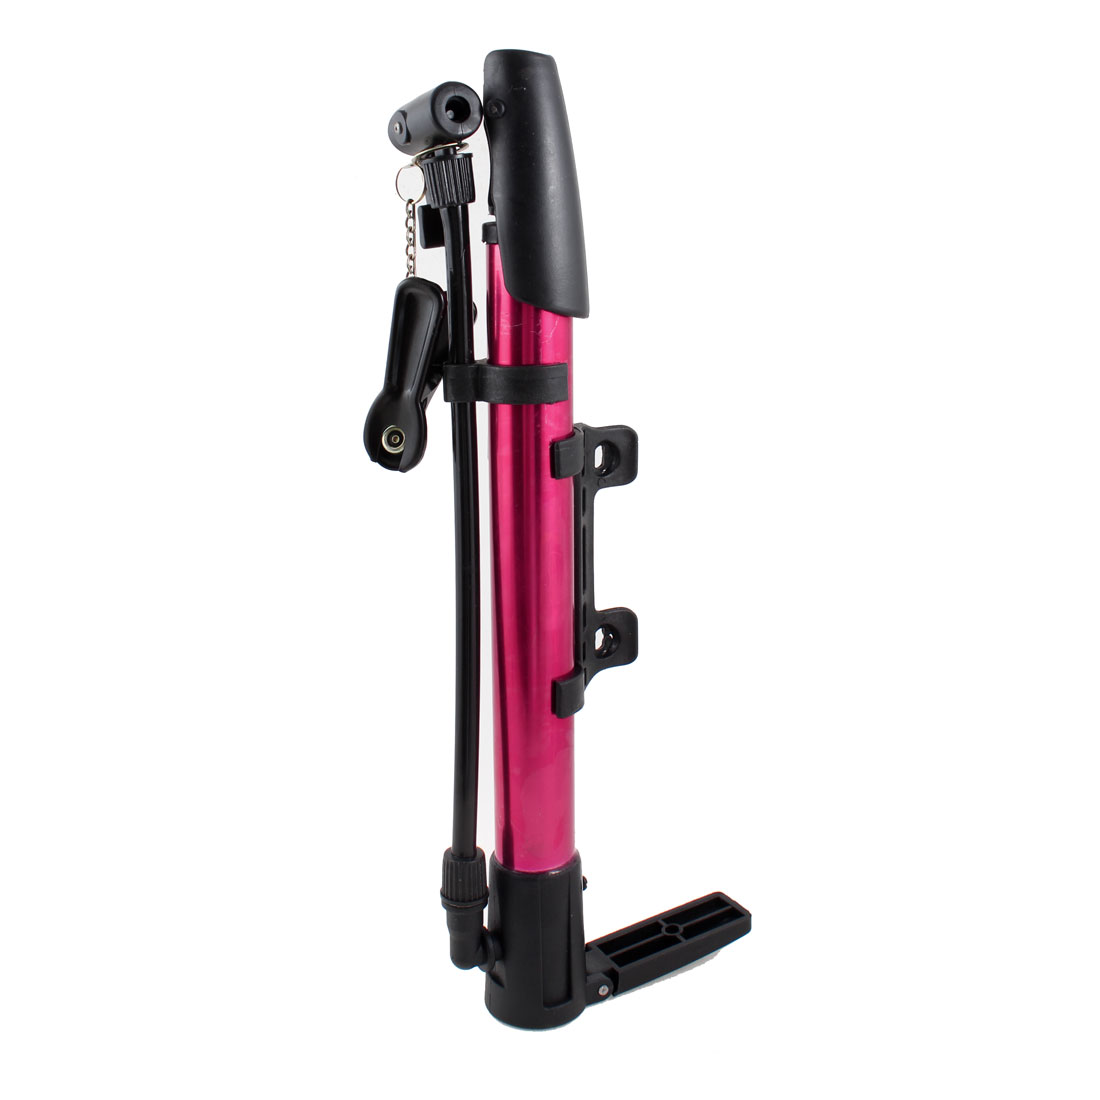 Bicycle Bike Tyre Manual Floor Pump Basketball Inflator Black Red